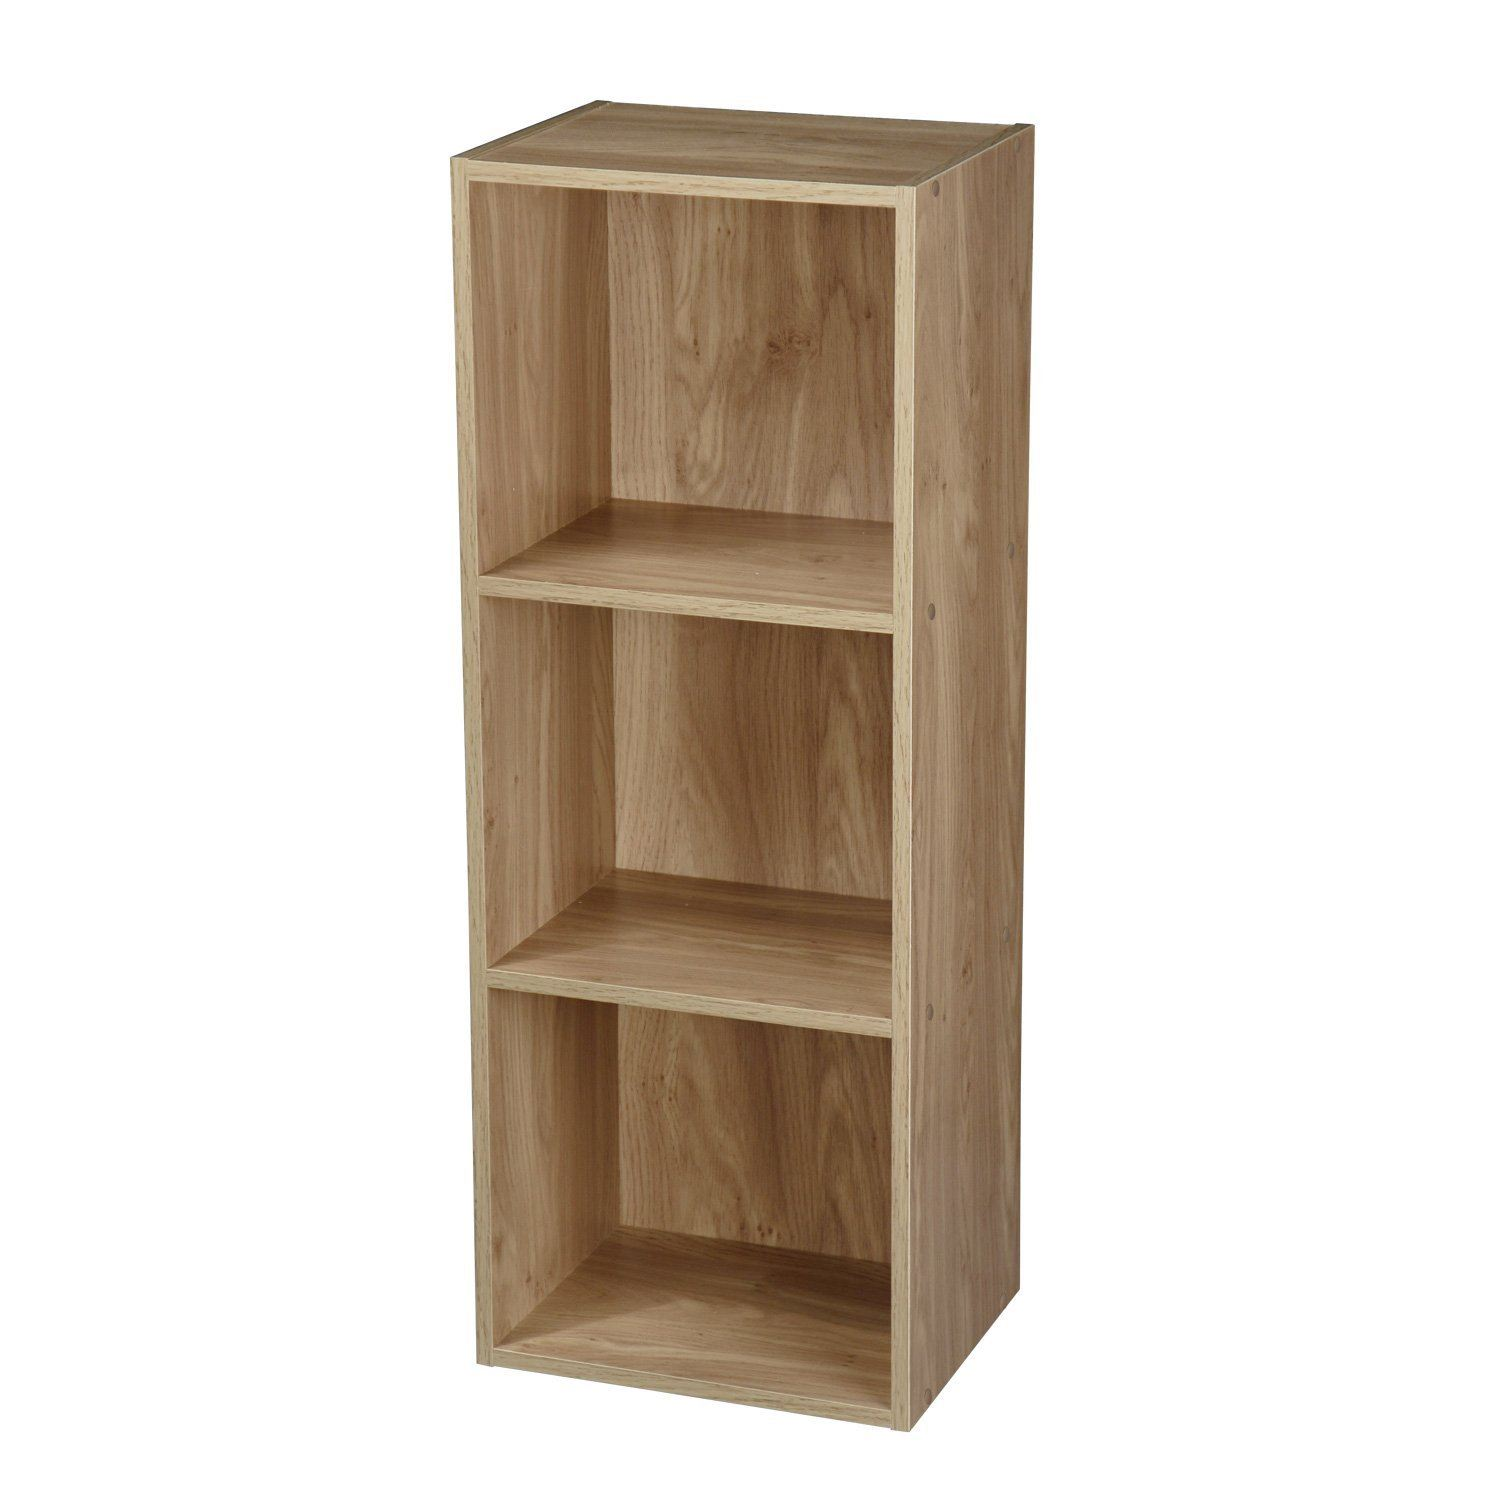 New wooden display storage units furniture shelve white for Furniture 2 u